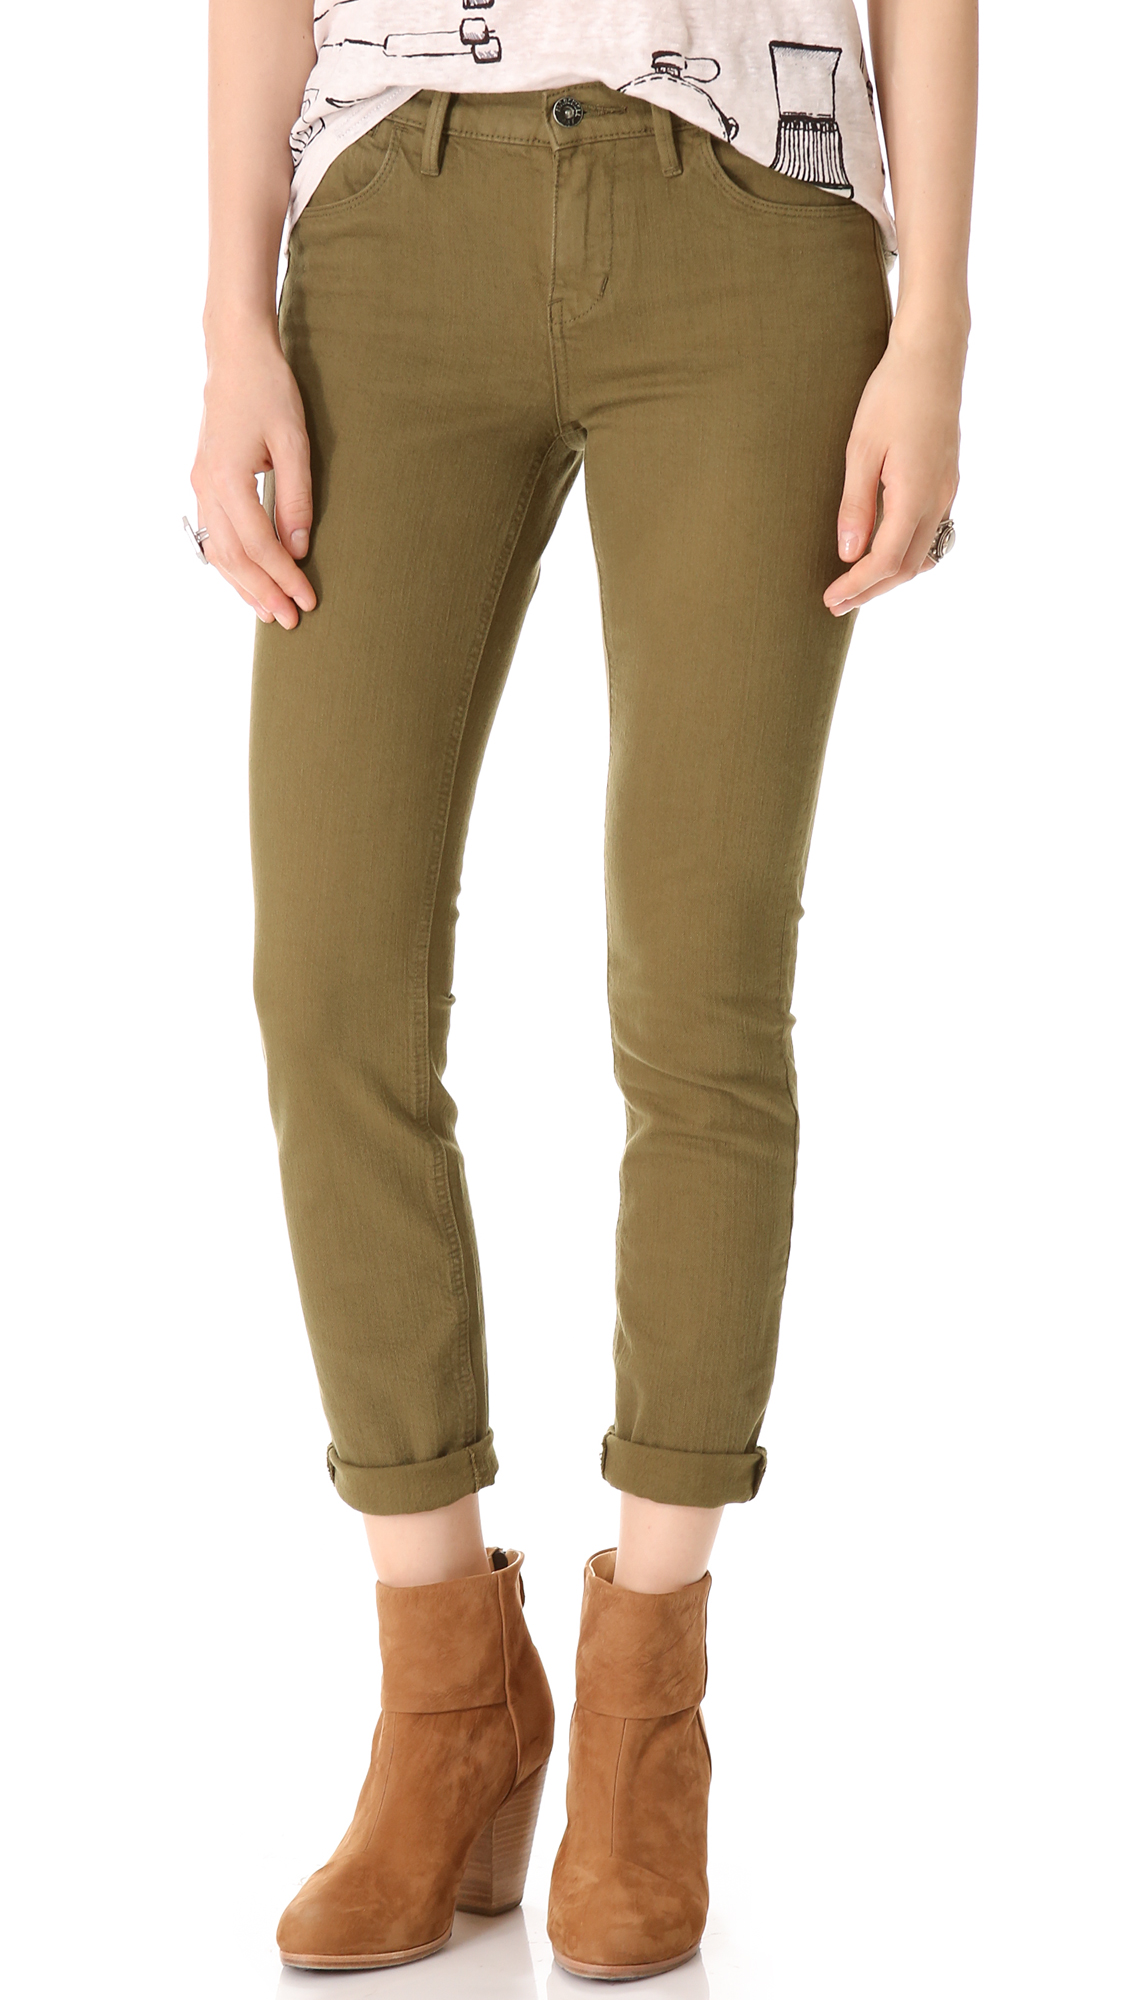 Free shipping and returns on Women's Green Skinny Jeans at 440v.cf